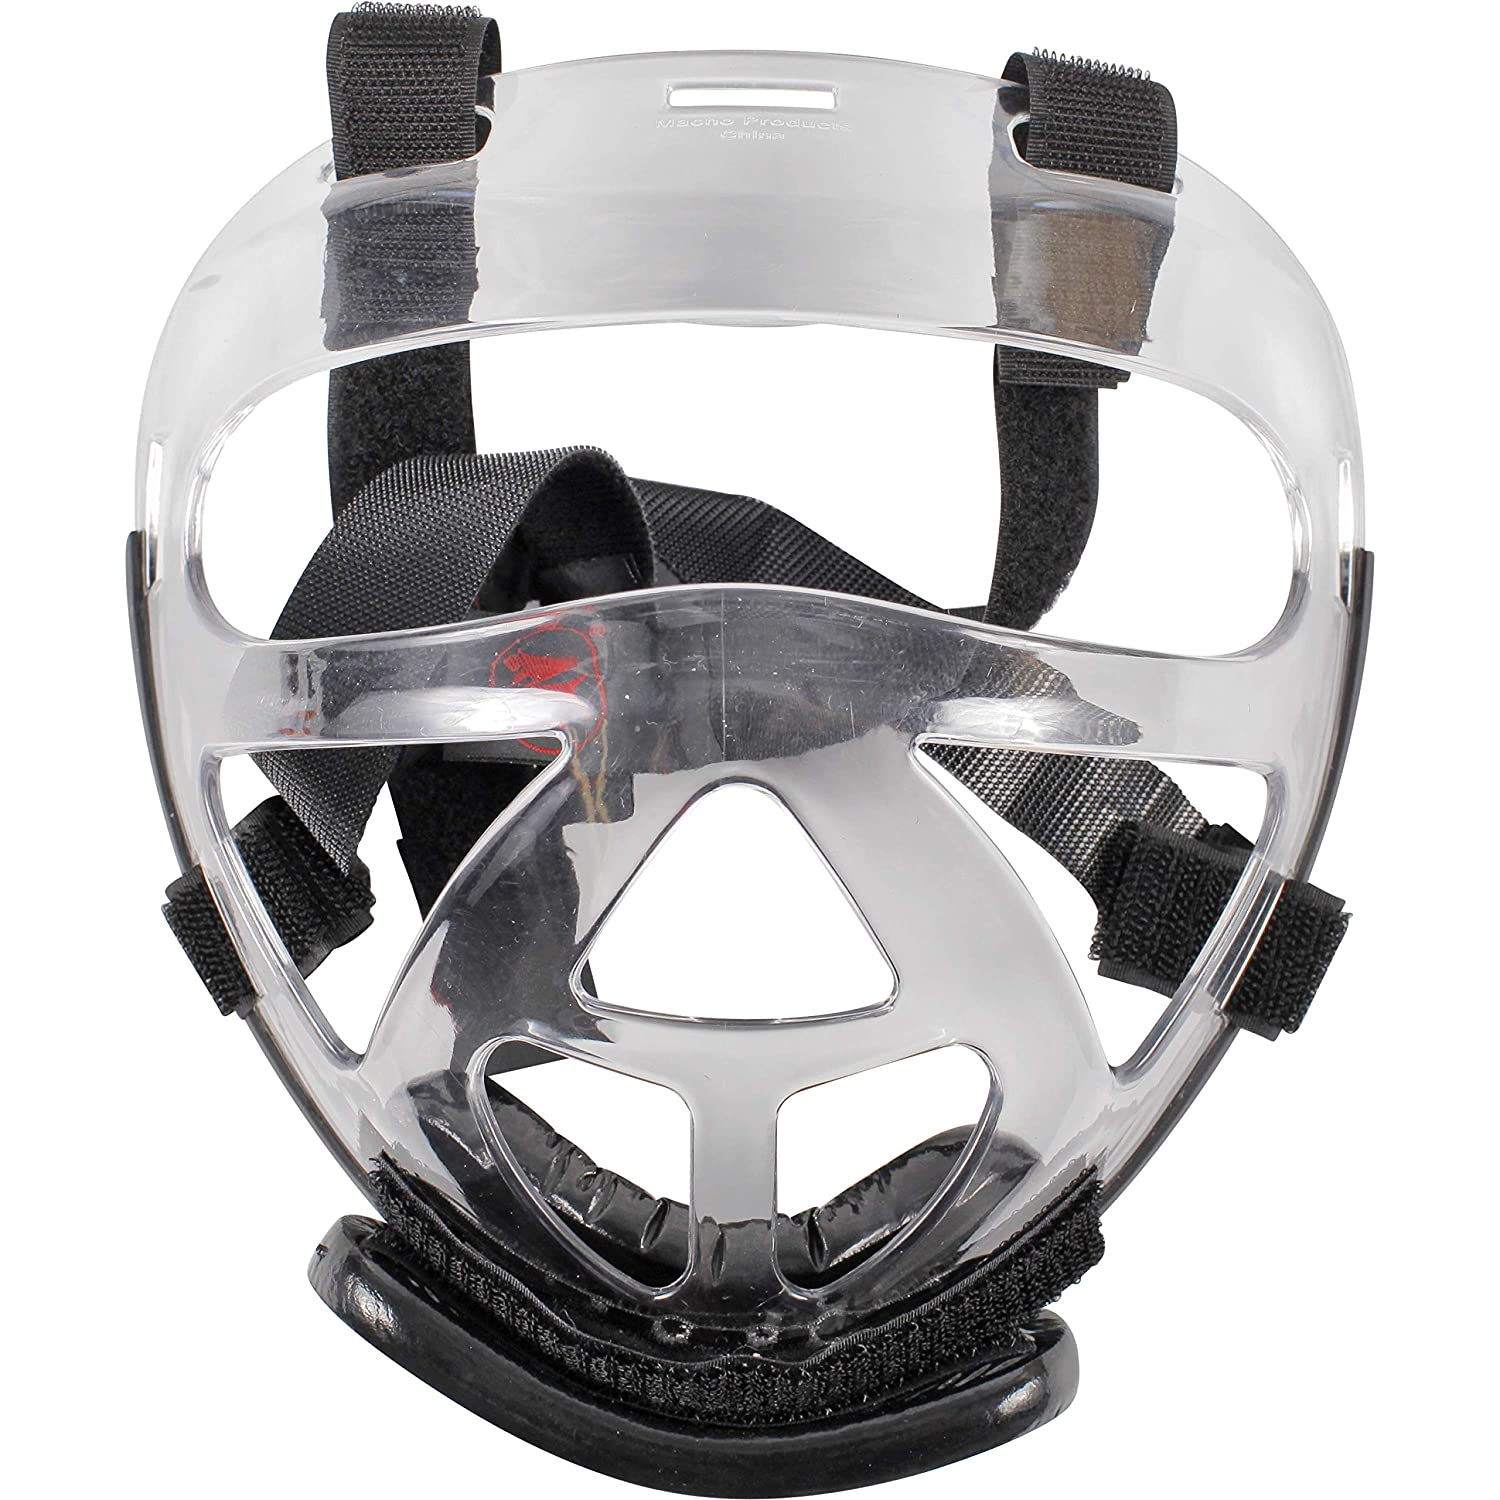 TMAS Face Warrior TMAS Face Shield B00113HK6M B00113HK6M, 荒尾市:bf3a5436 --- capela.dominiotemporario.com